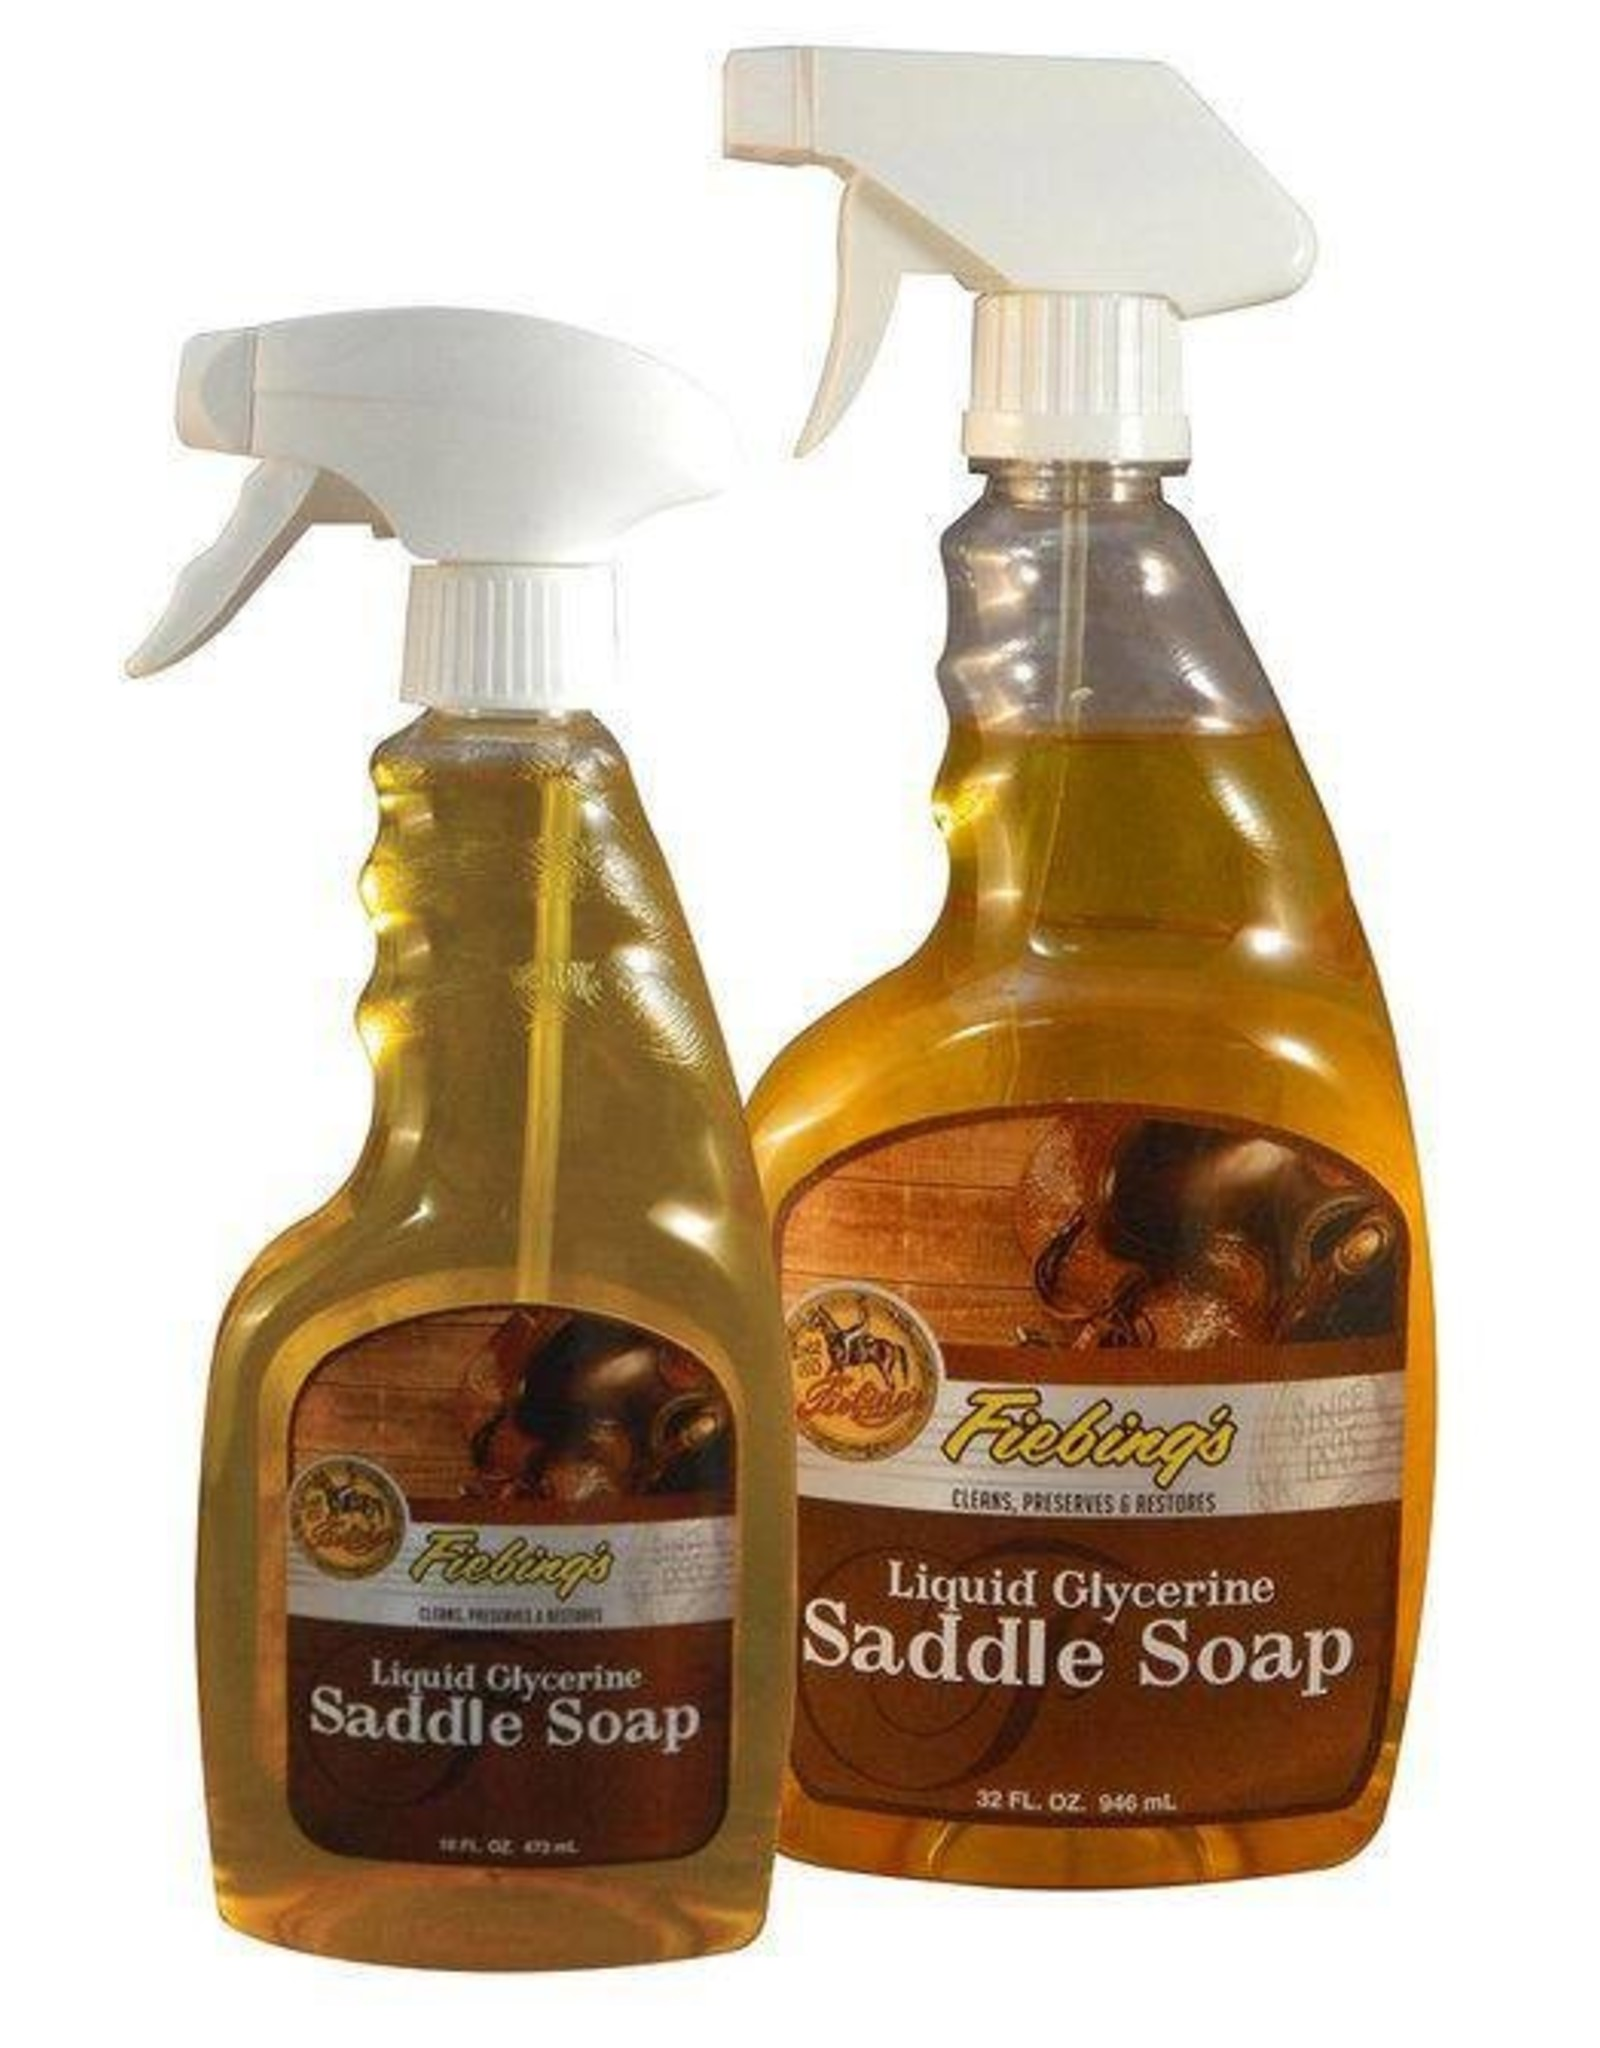 Fiebing's Liquid Glycerine Saddle Soap - 32oz